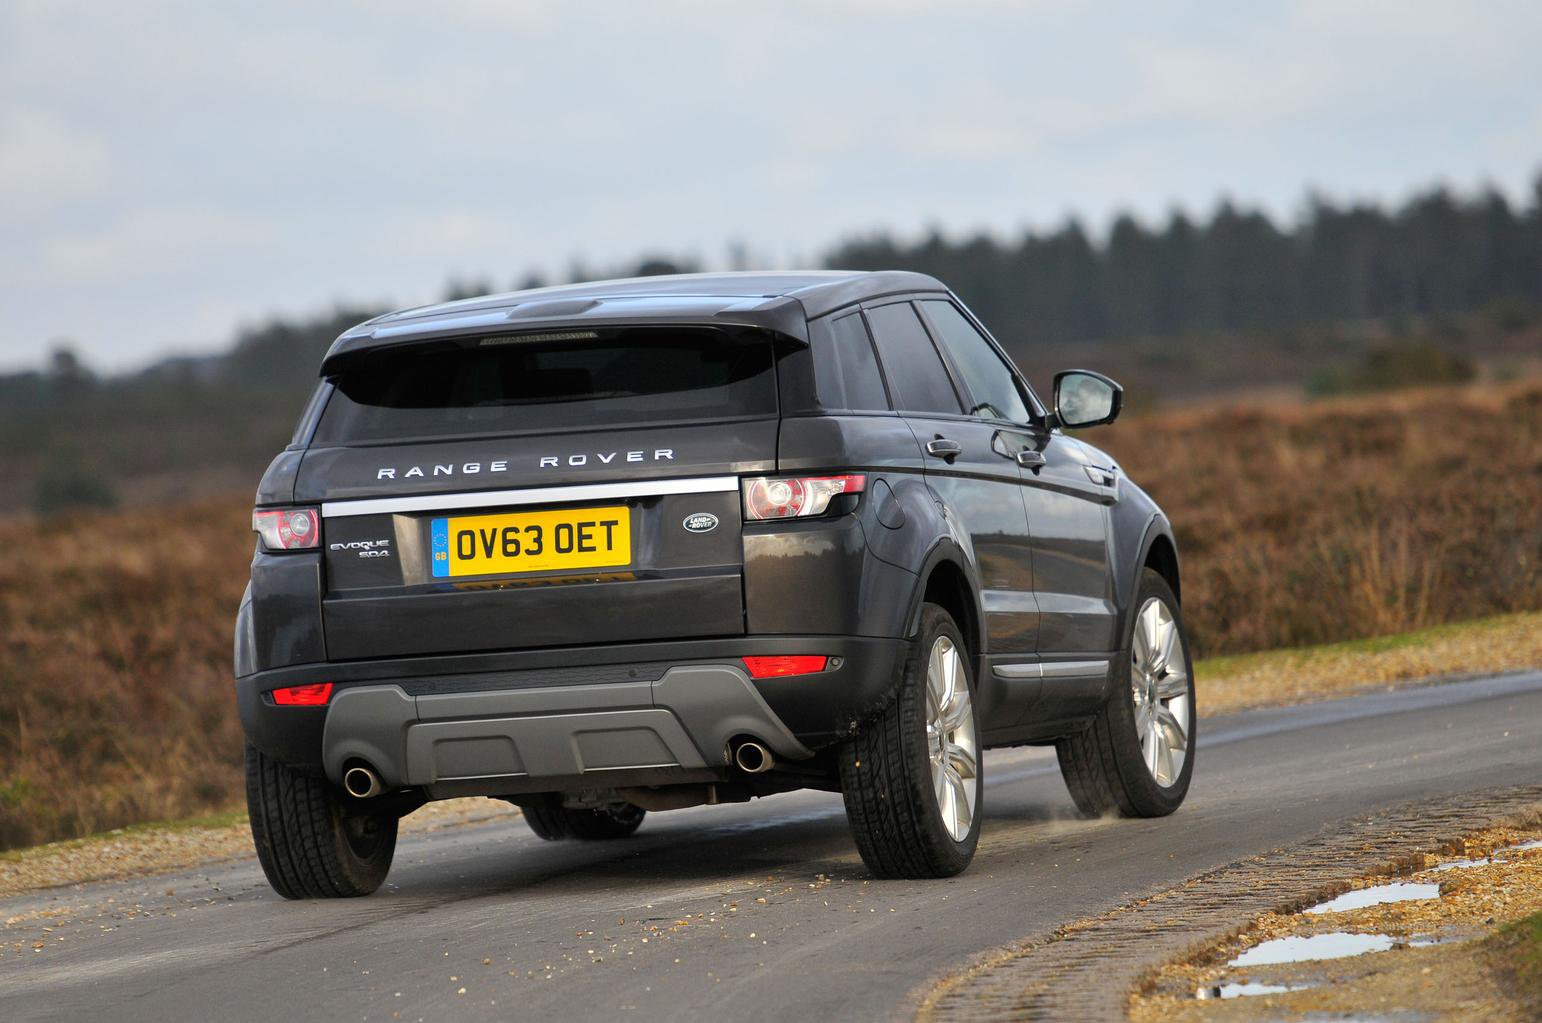 7 reasons to buy a Range Rover Evoque